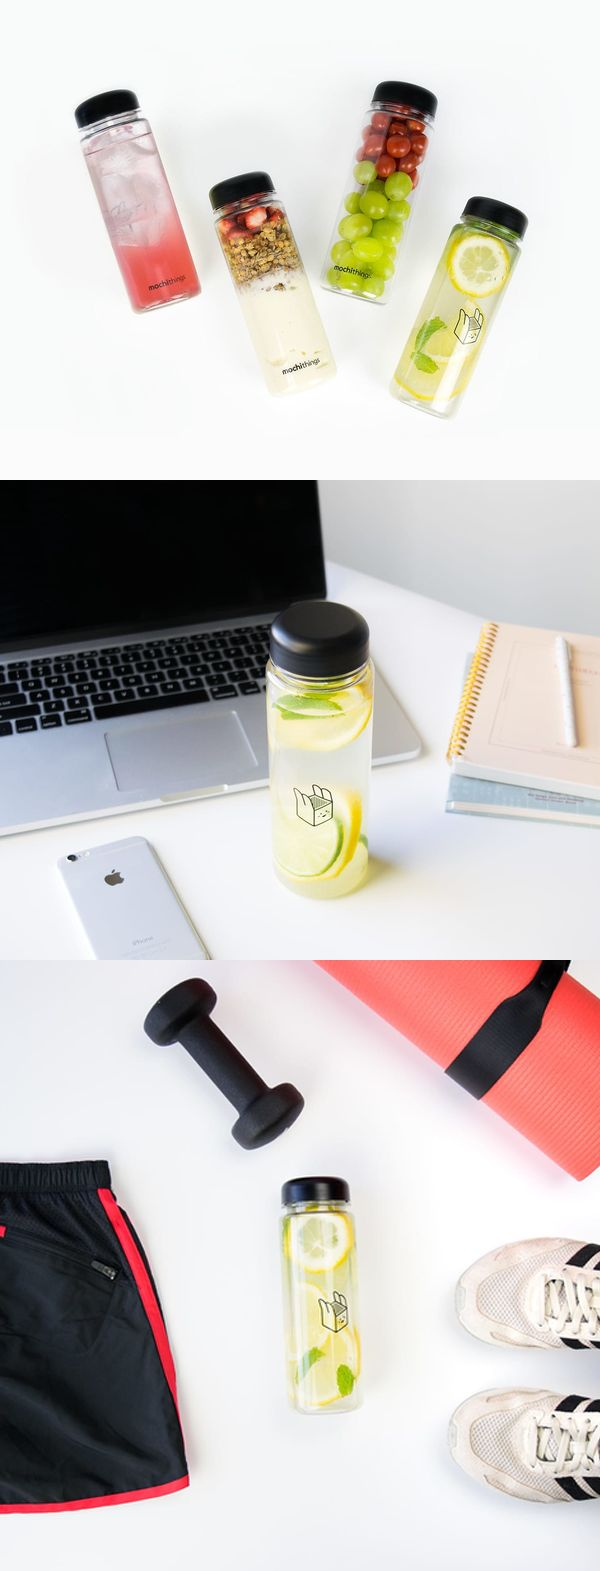 Meet our cute and versatile water bottle with our adorable mochibox design or logo! It is a clear Tritan bottle that holds 500ml of hot or cold liquid. This versatile container can also be used to carry small snacks or fruits too!